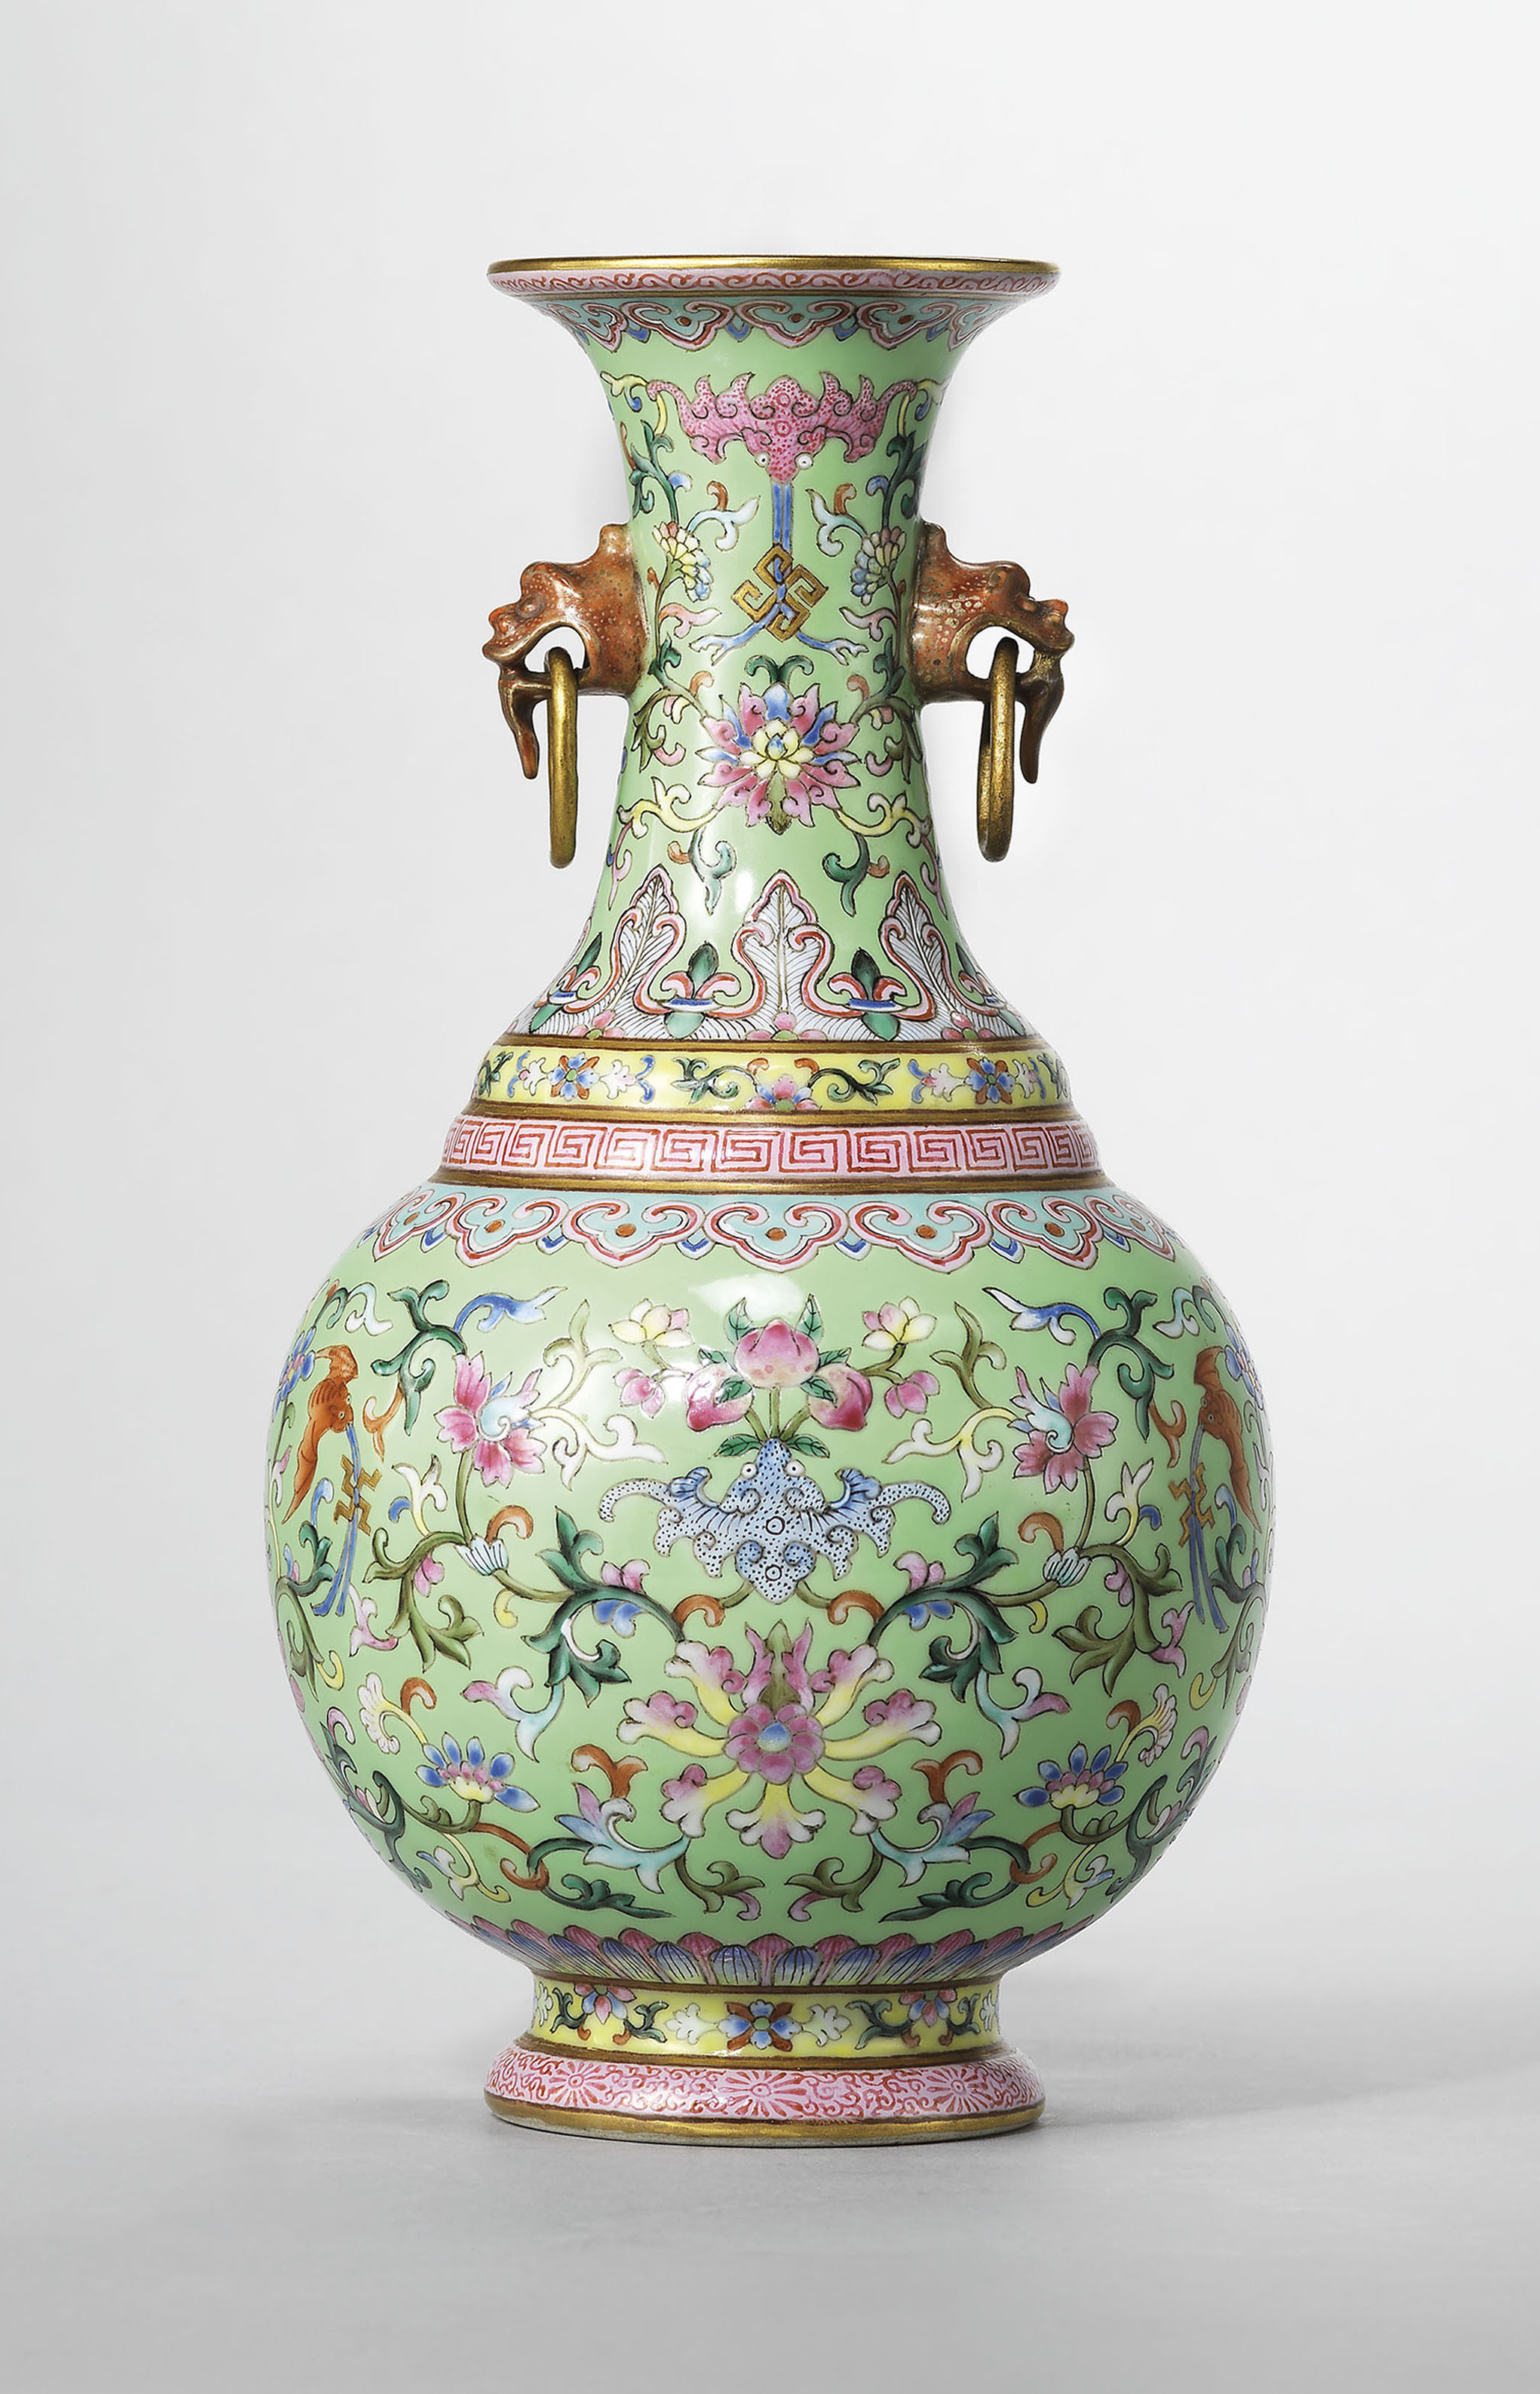 blown glass vases wholesale of 20 inspirational antique decorative glass vases pertaining to a lime green ground famille rose twin handled vase jiaqing six character